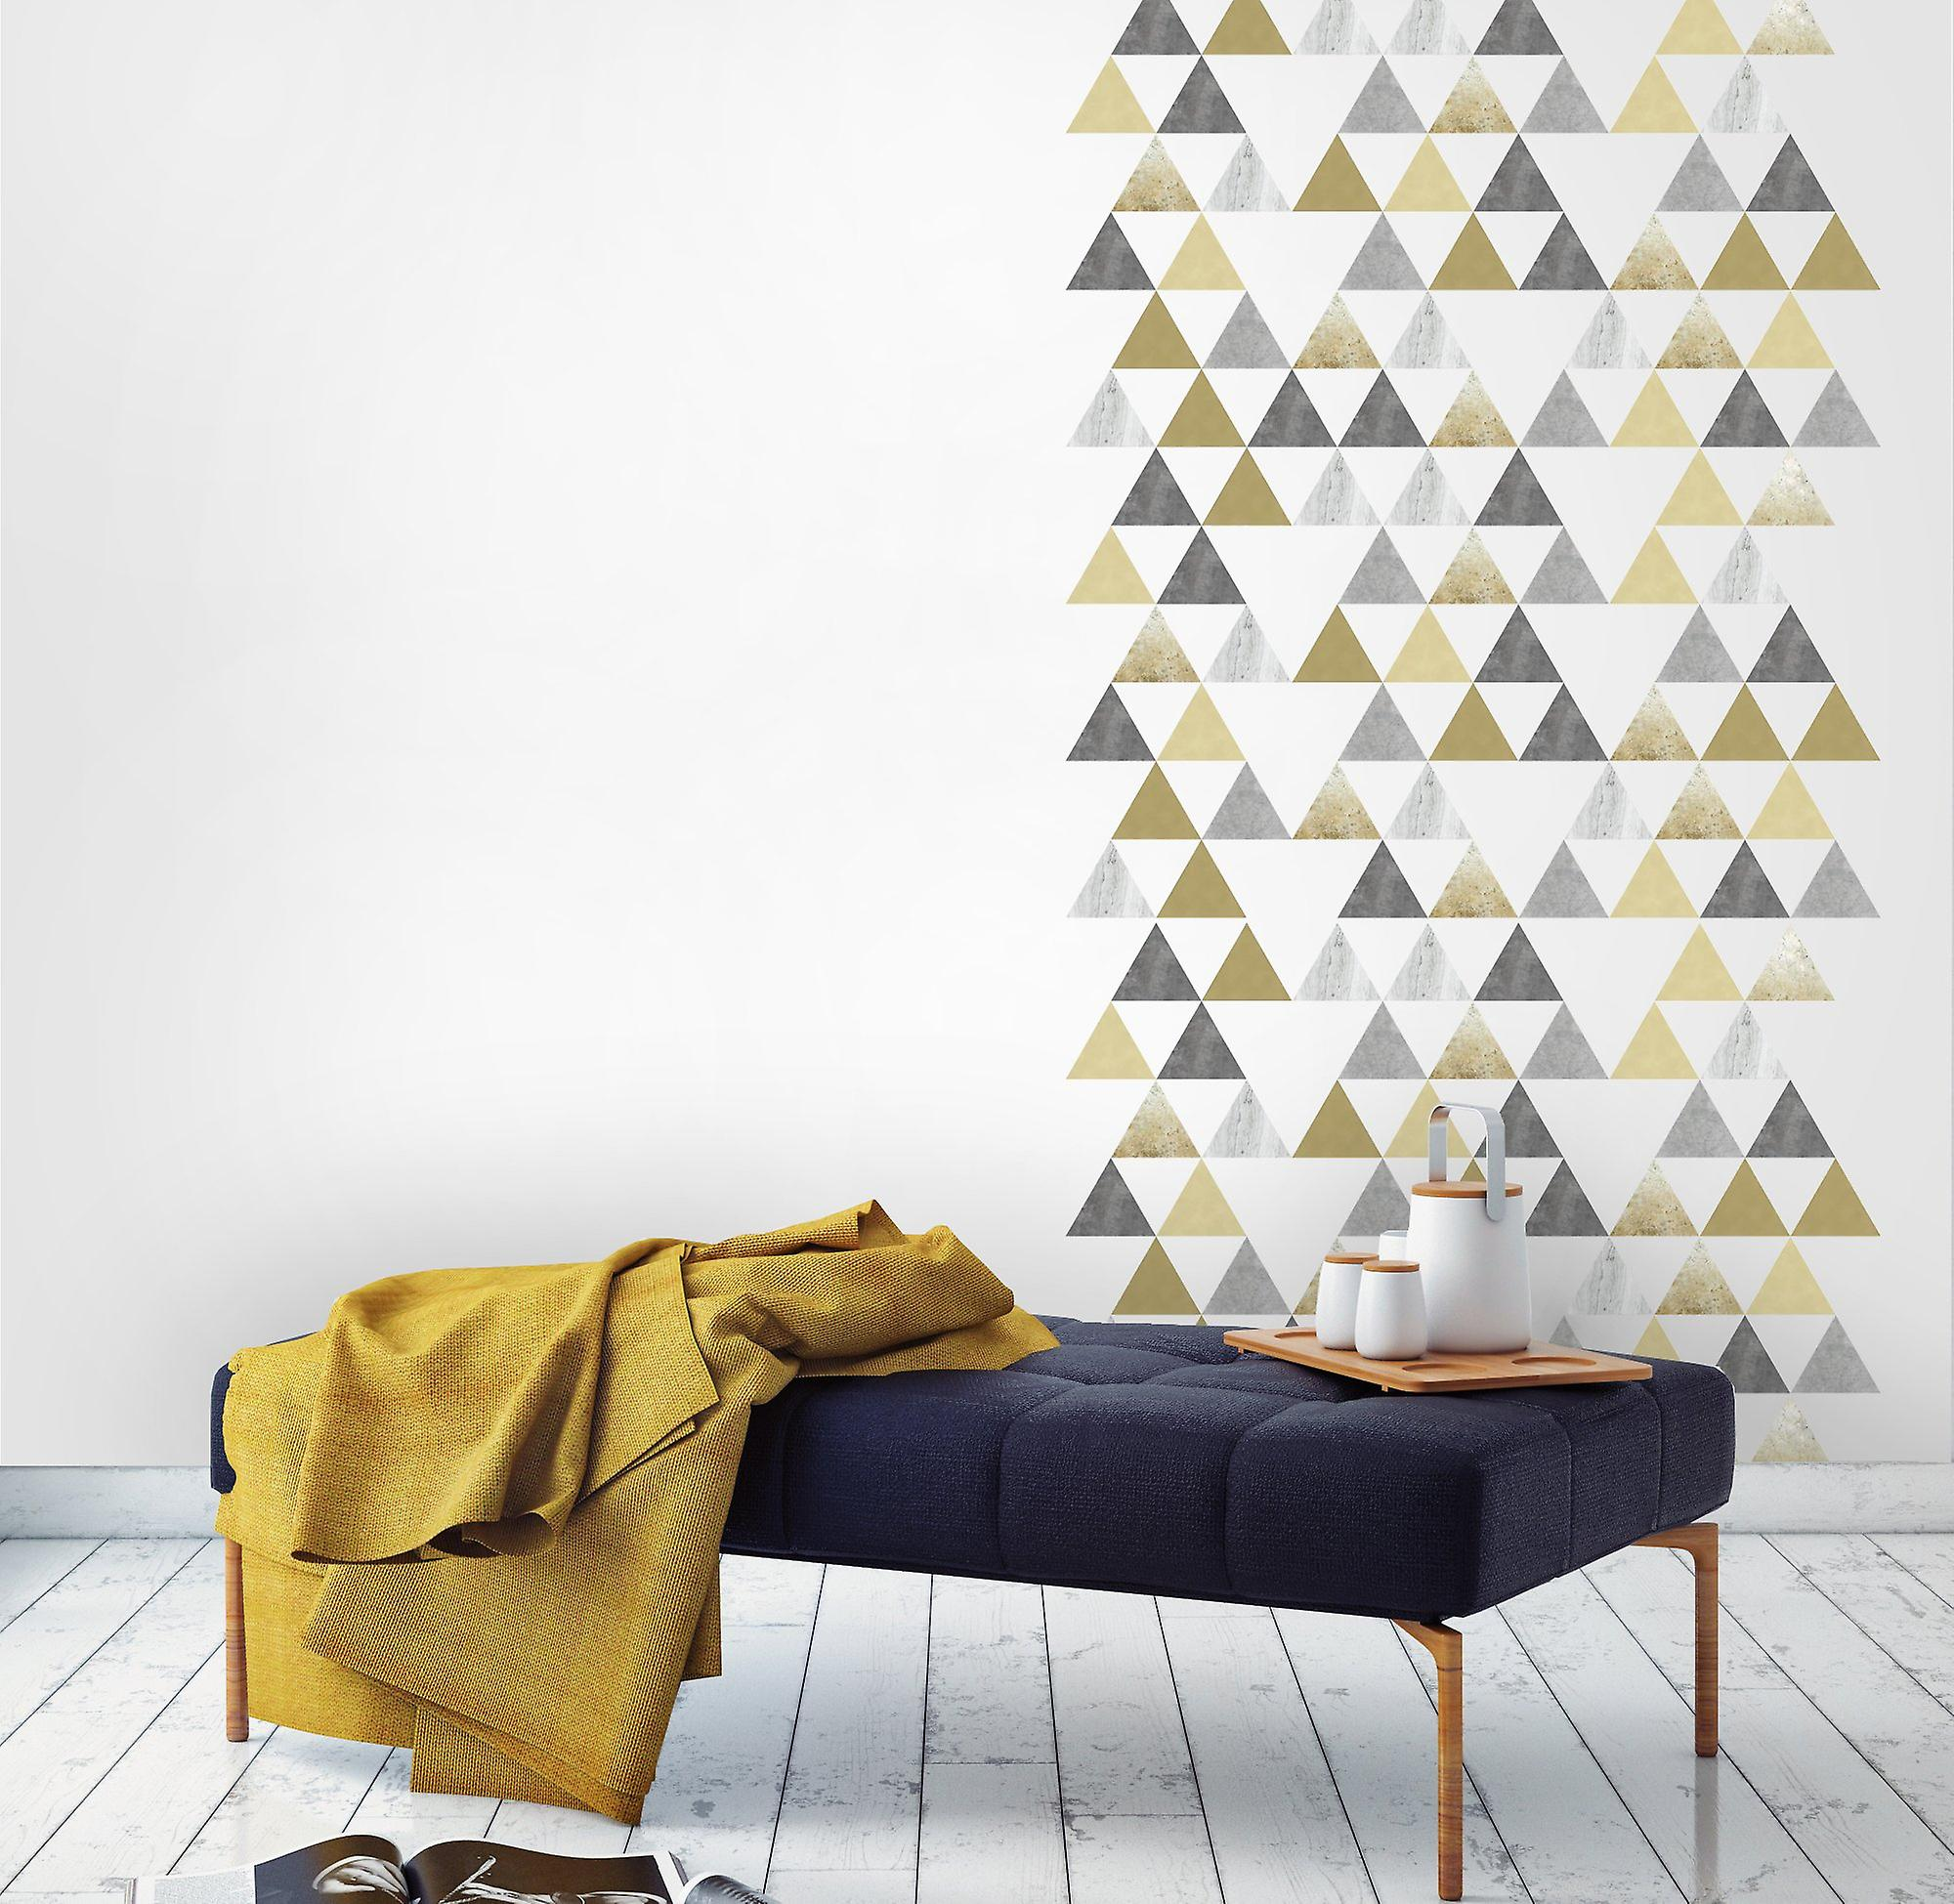 Kalaand small triangle wall decals